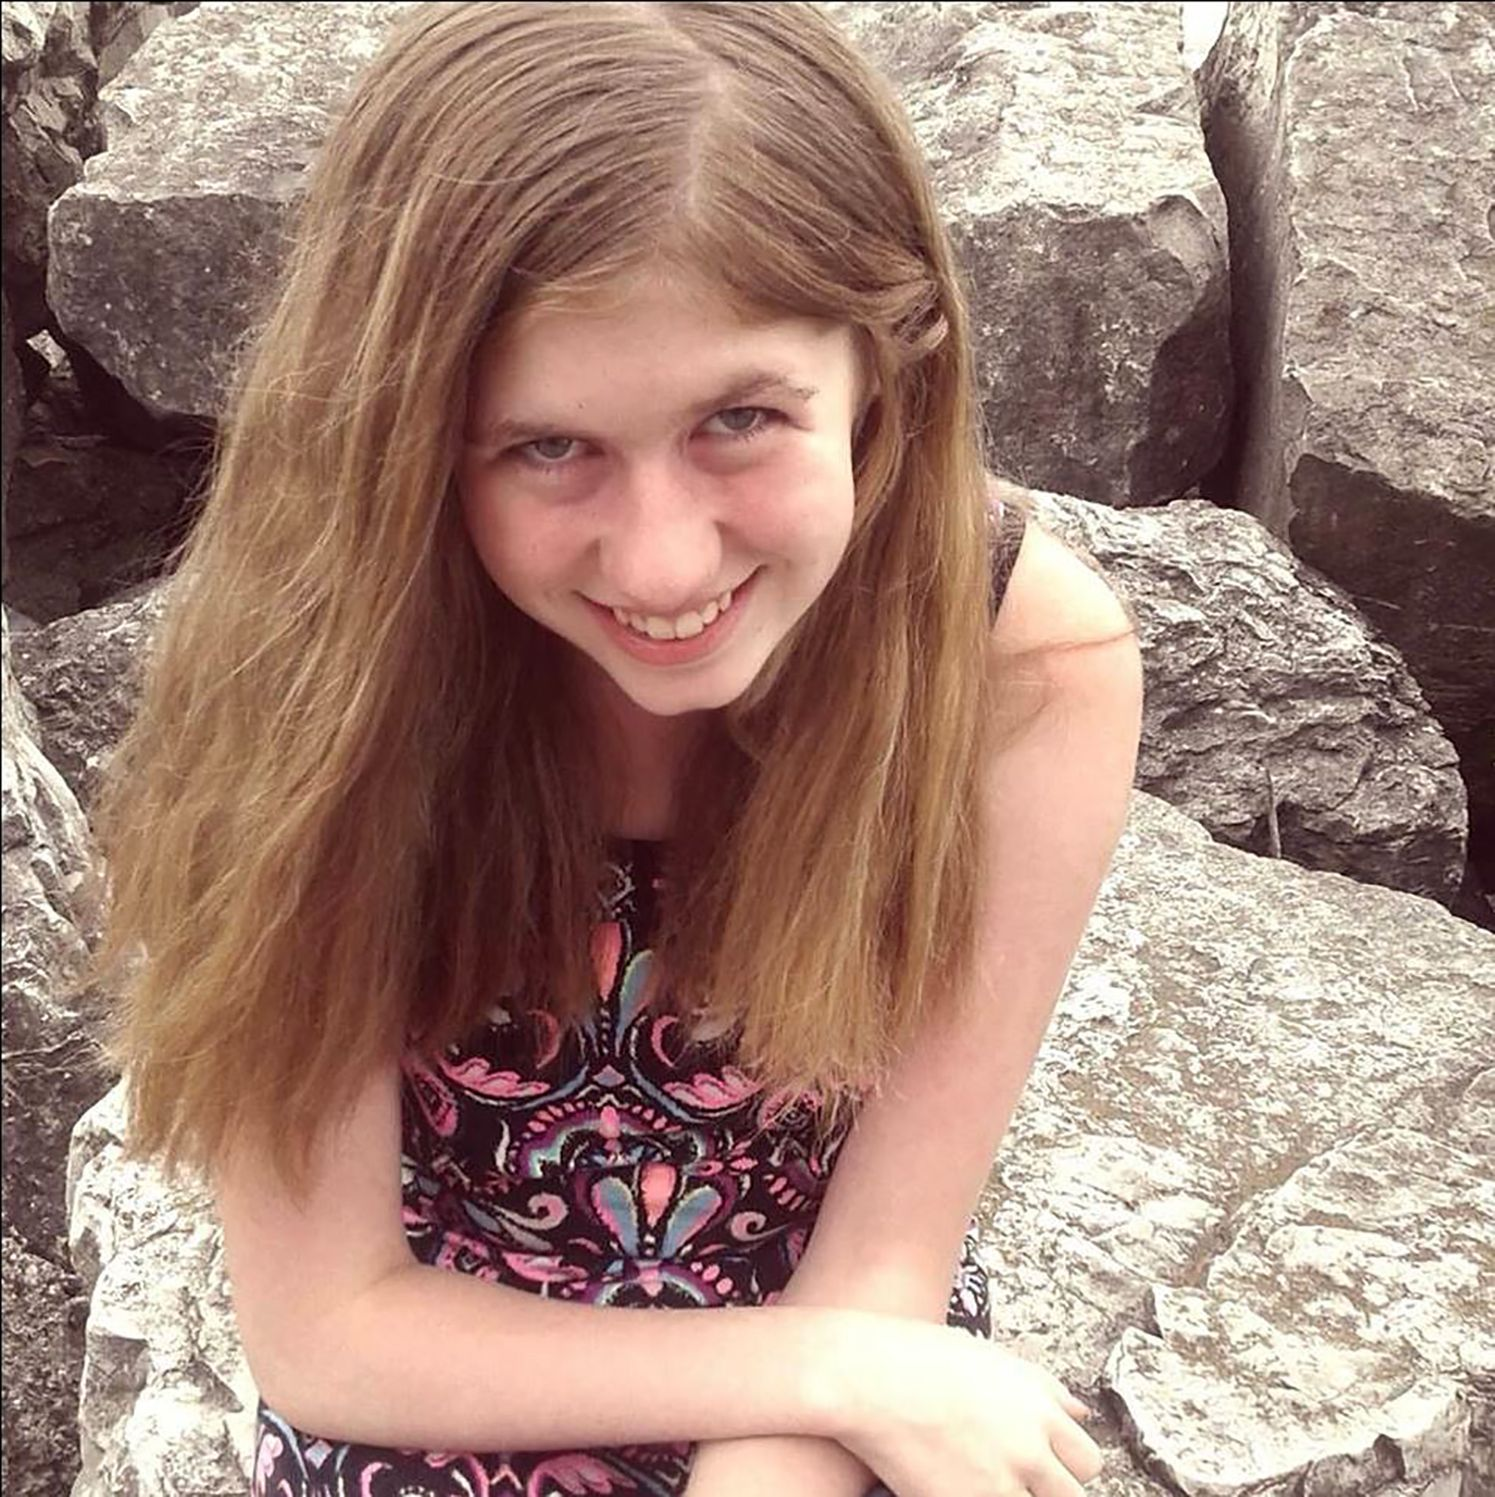 Missing Wisconsin teen found alive: What we know about the kidnapping suspect, Jayme Closs' escape